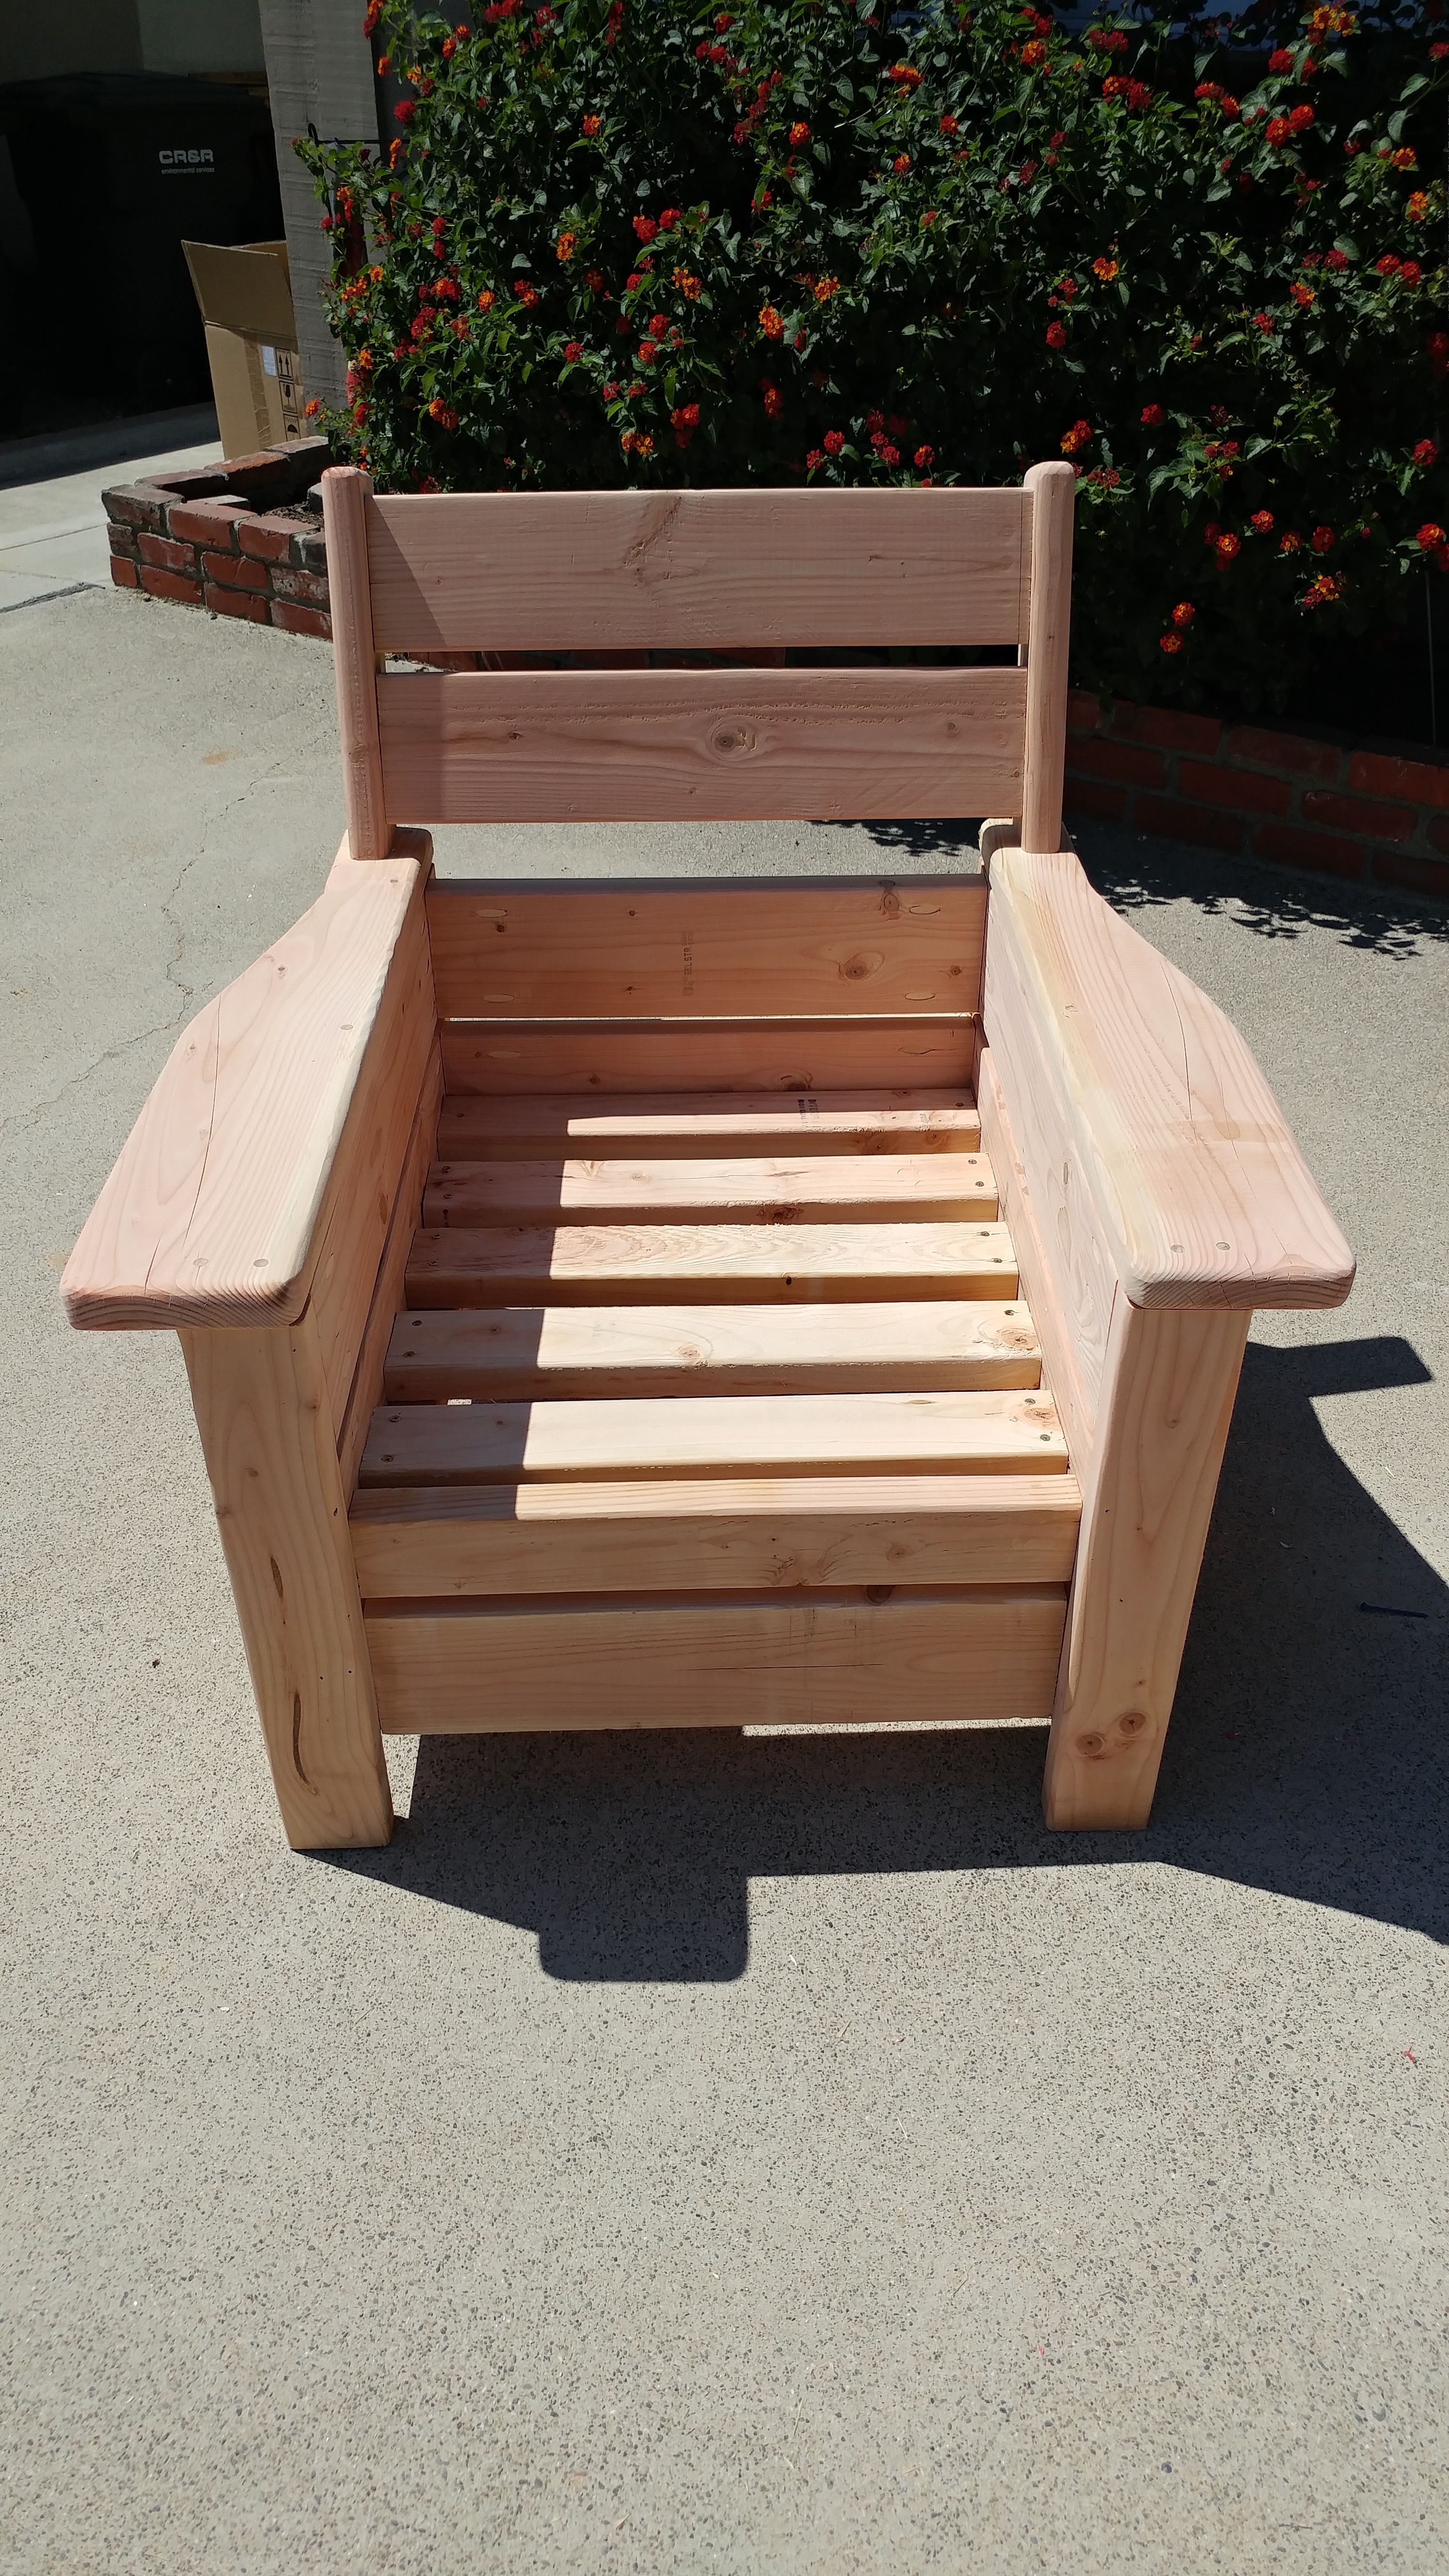 Ana White Modern Outdoor Chair With A Twist Diy Projects In